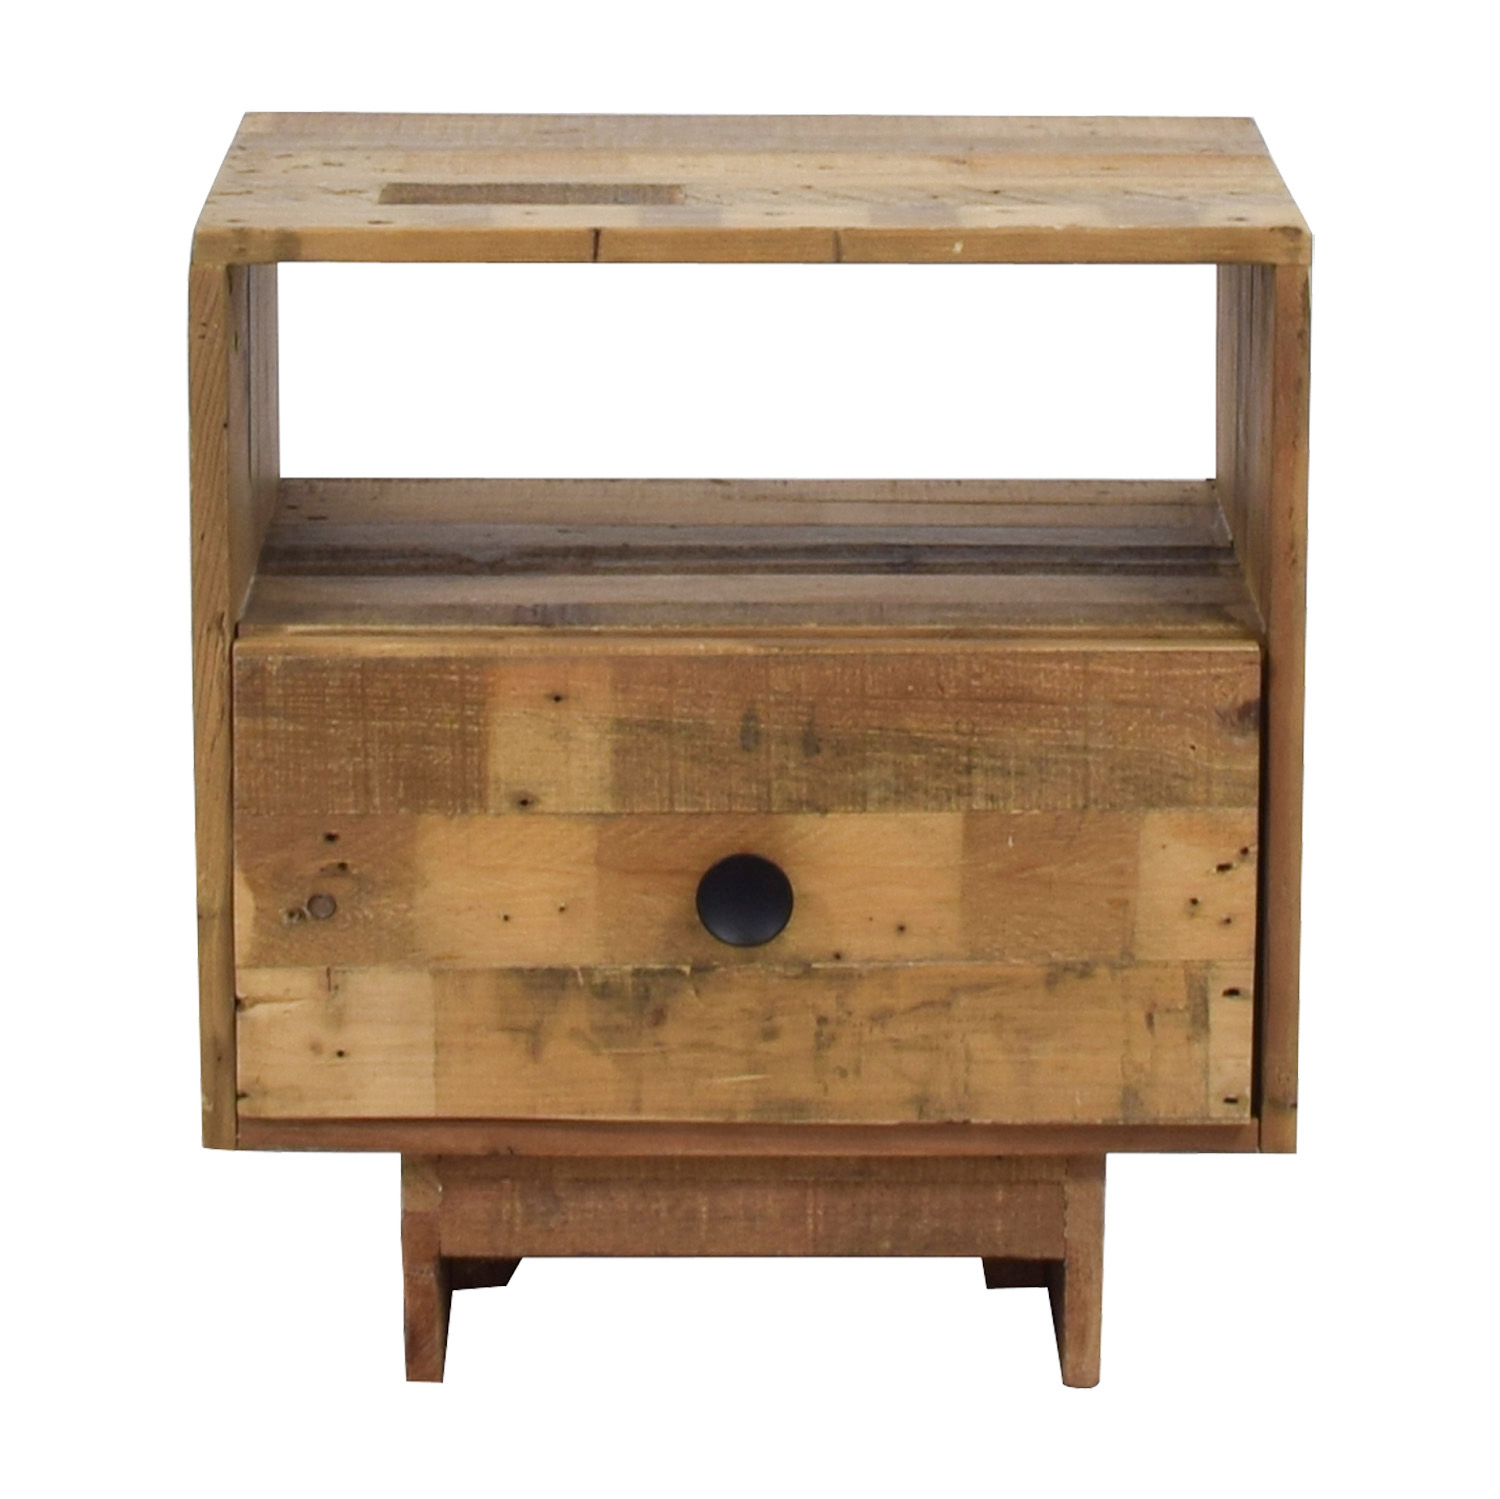 OFF West Elm West Elm Emmerson Reclaimed Pine Nightstand